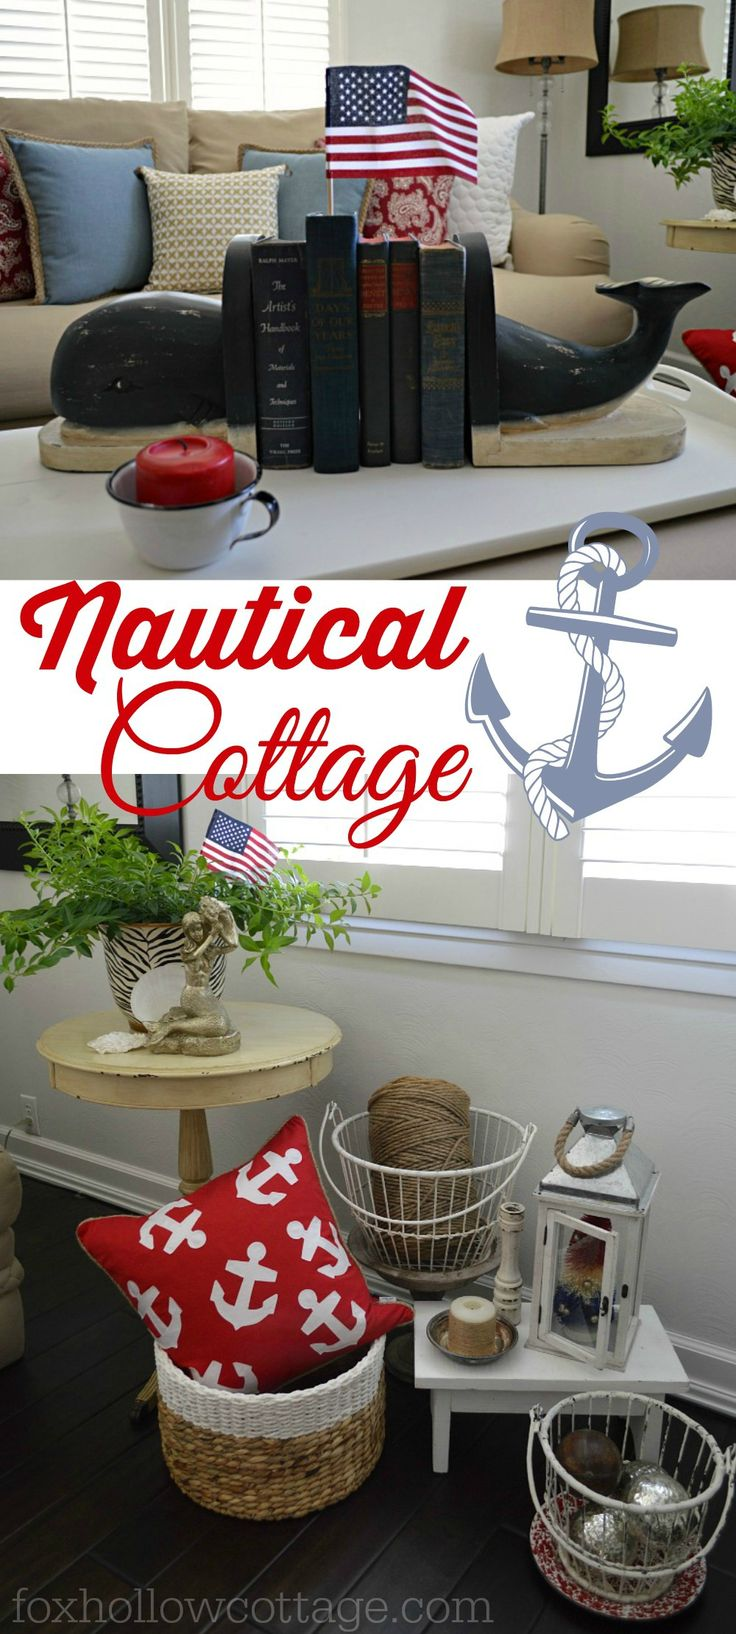 Nautical Home Decorating | Cottage Summer Decor - with coastal @homegoods  elements like the red anchor pillow and iron baskets. sponsored pin